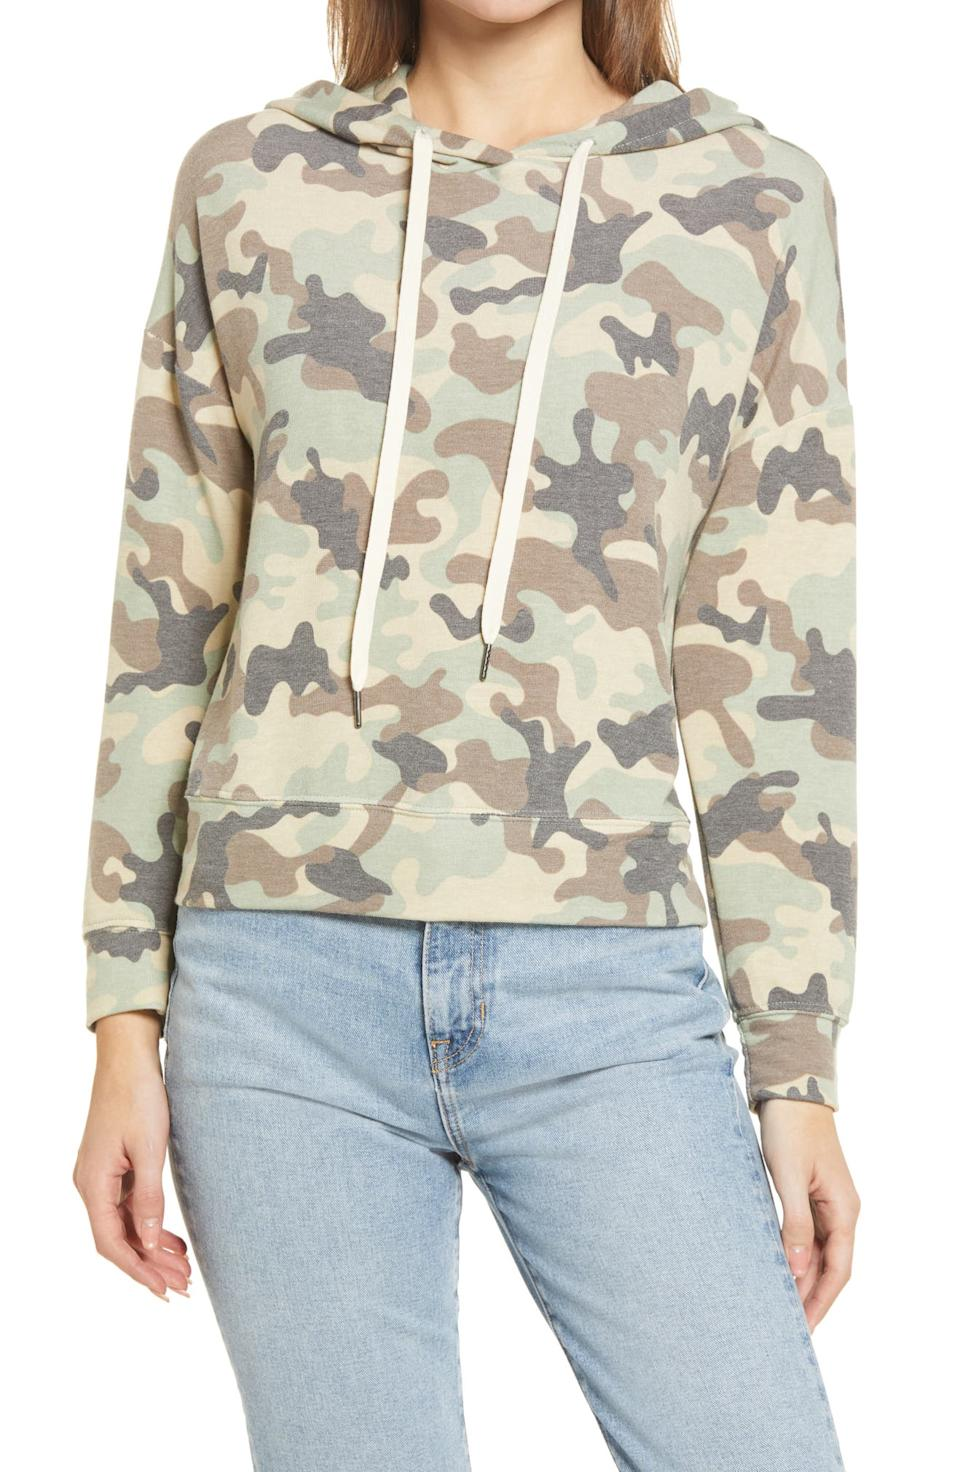 Everleigh Hooded Sweatshirt. Image via Nordstrom.